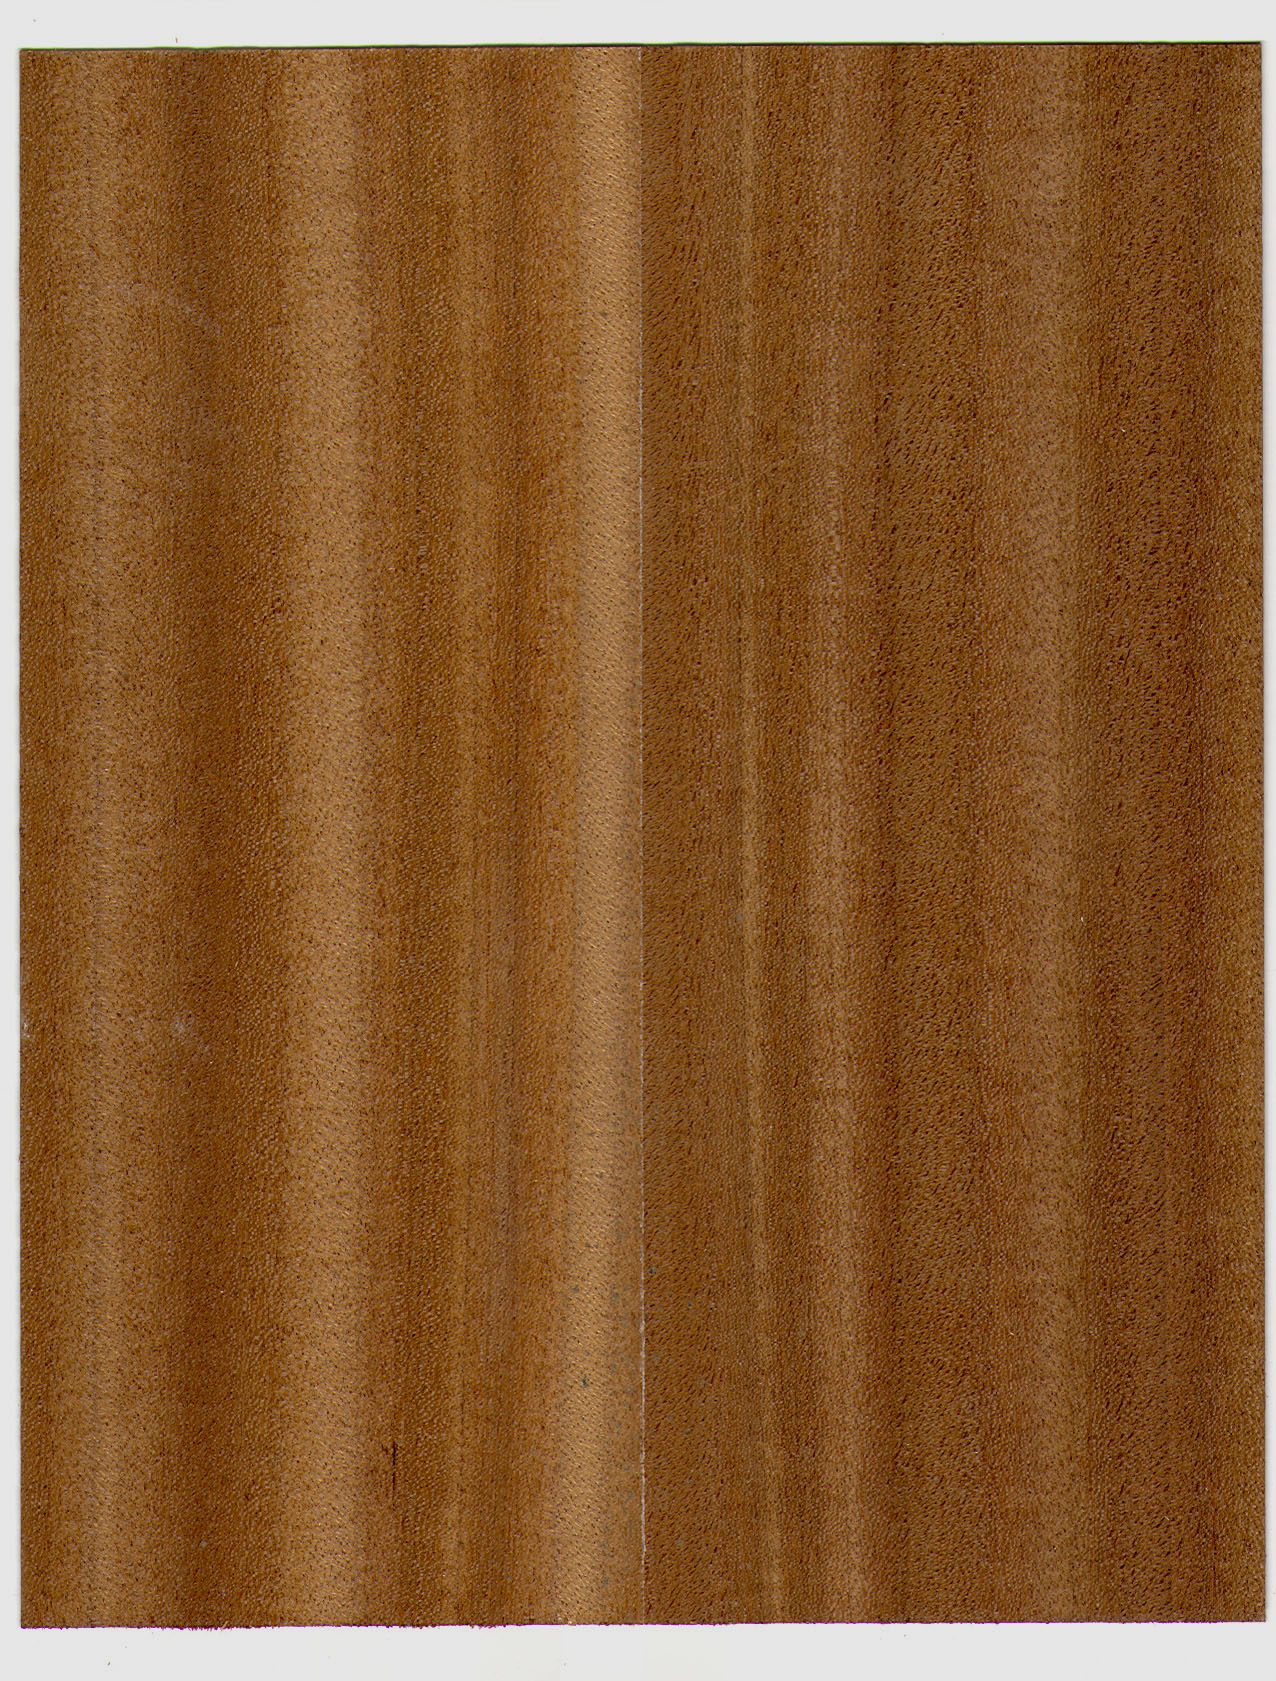 texture image: wood Texture, laminate, download photo background, wood ...